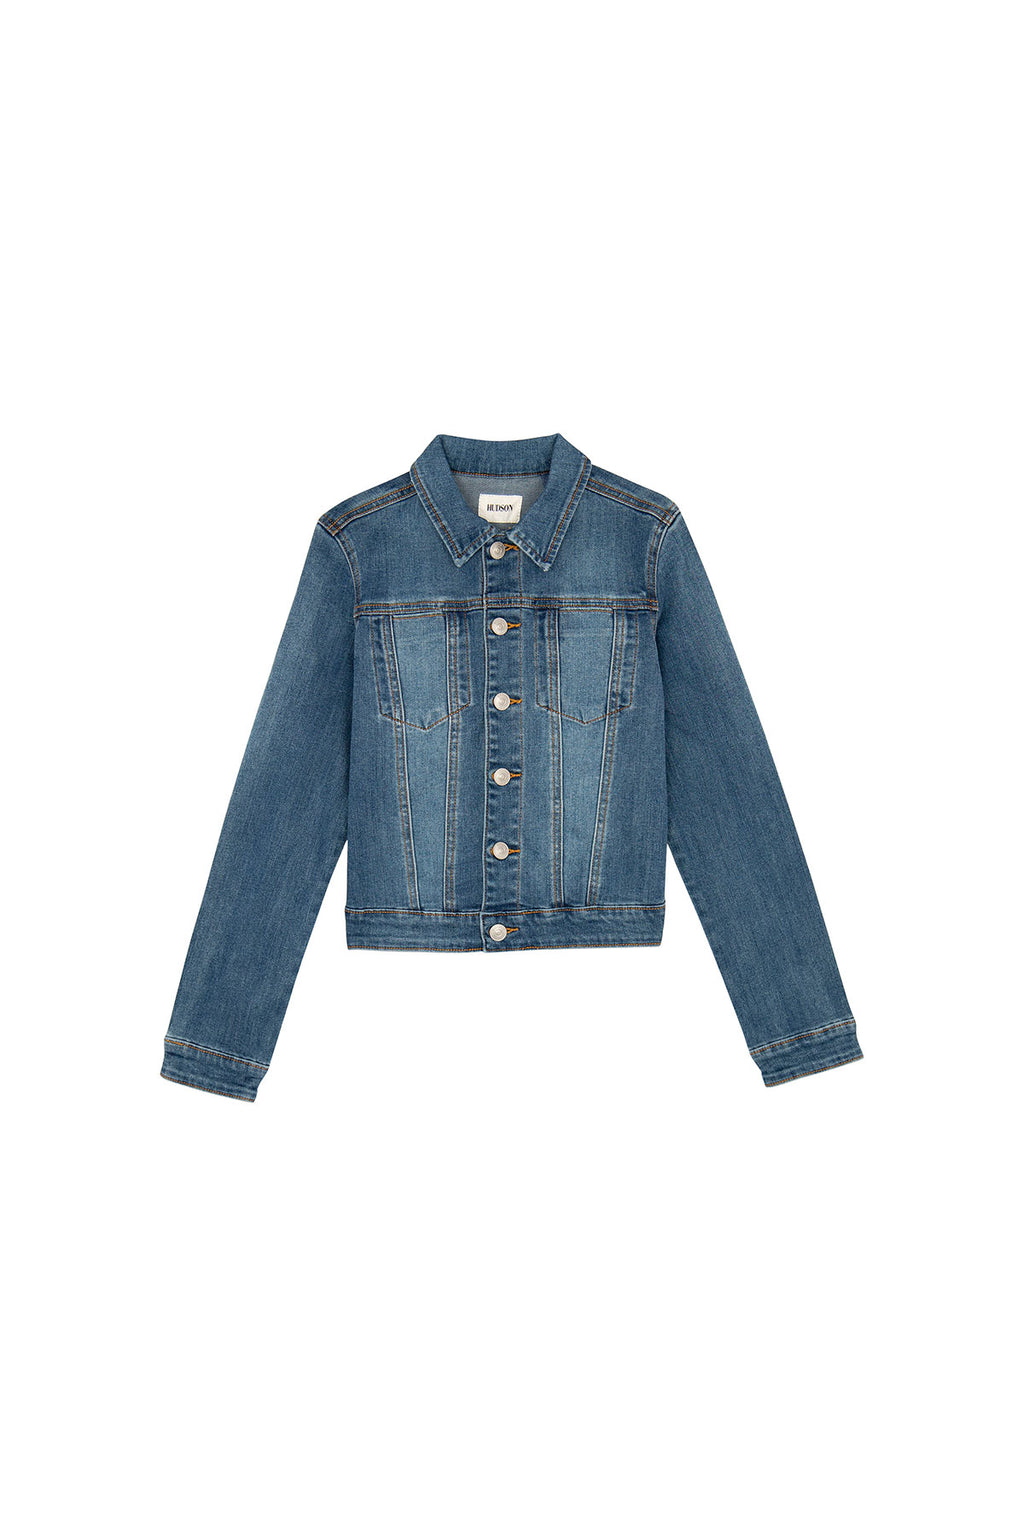 GIRLS JEAN JACKET, SIZES 7-16 - INDIGO BLUE - Image 1